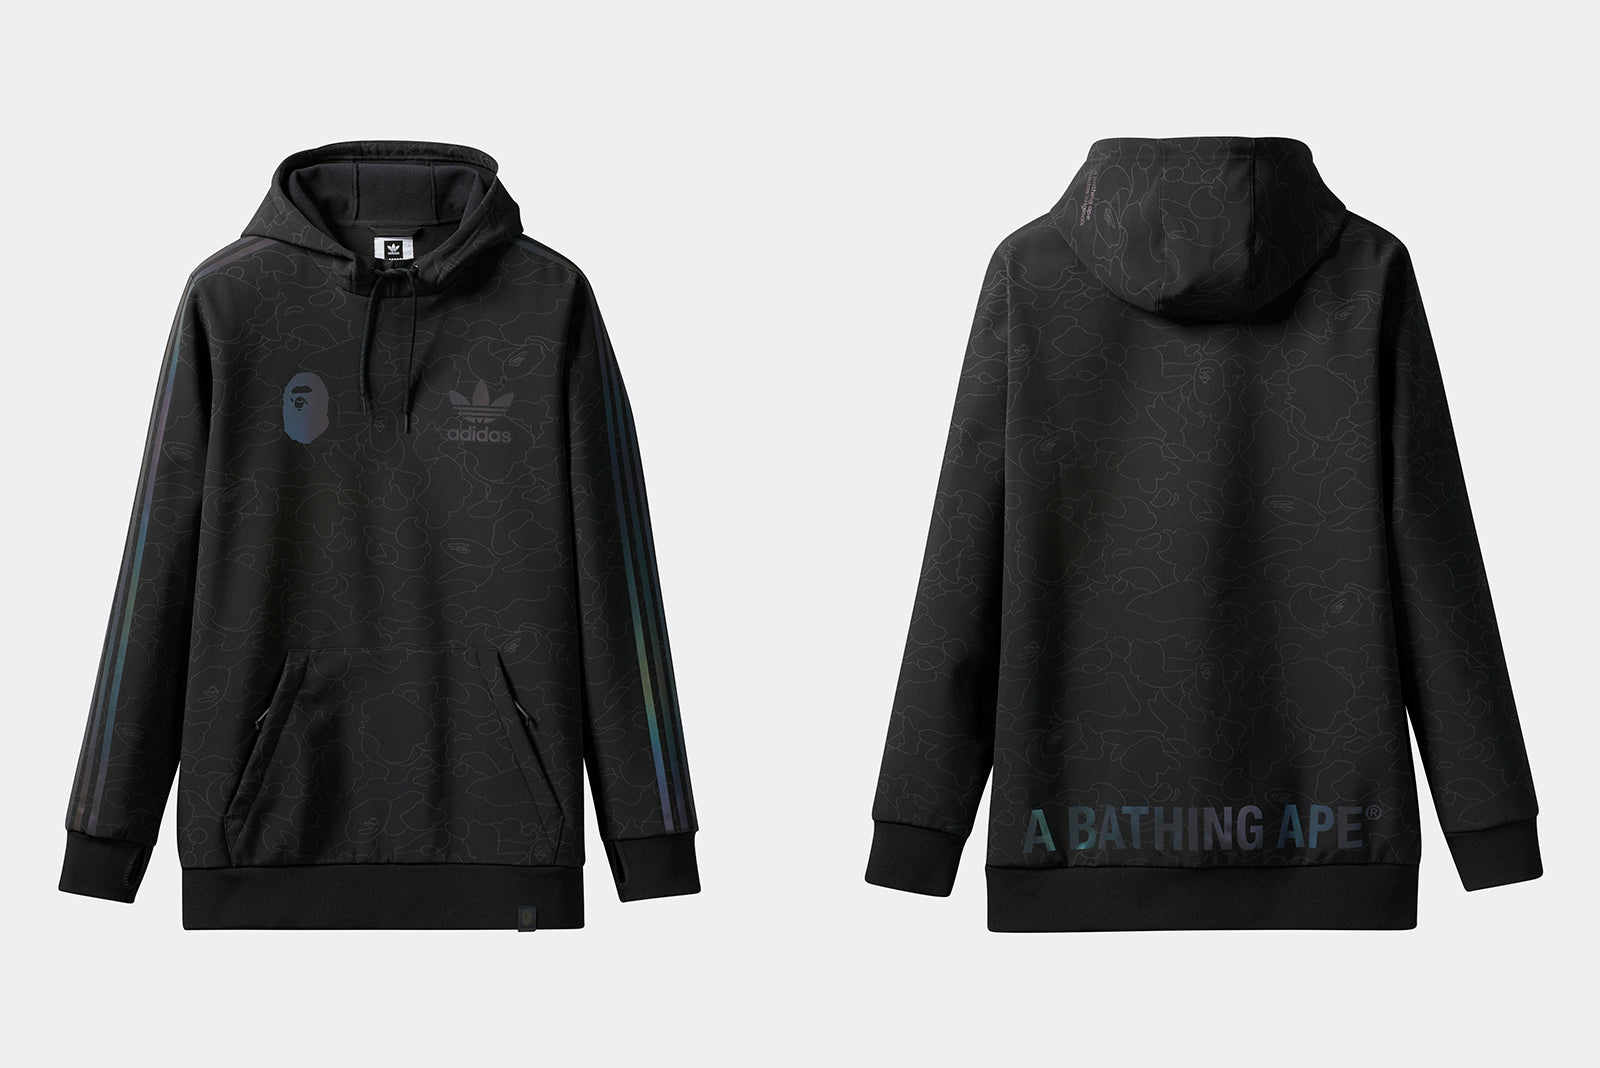 67c66650485d adidas Tech Hooded Sweatshirt by BAPE DU0206 Black Price  £109.00. Launch   Friday 2nd of November ONLINE  23 00GMT